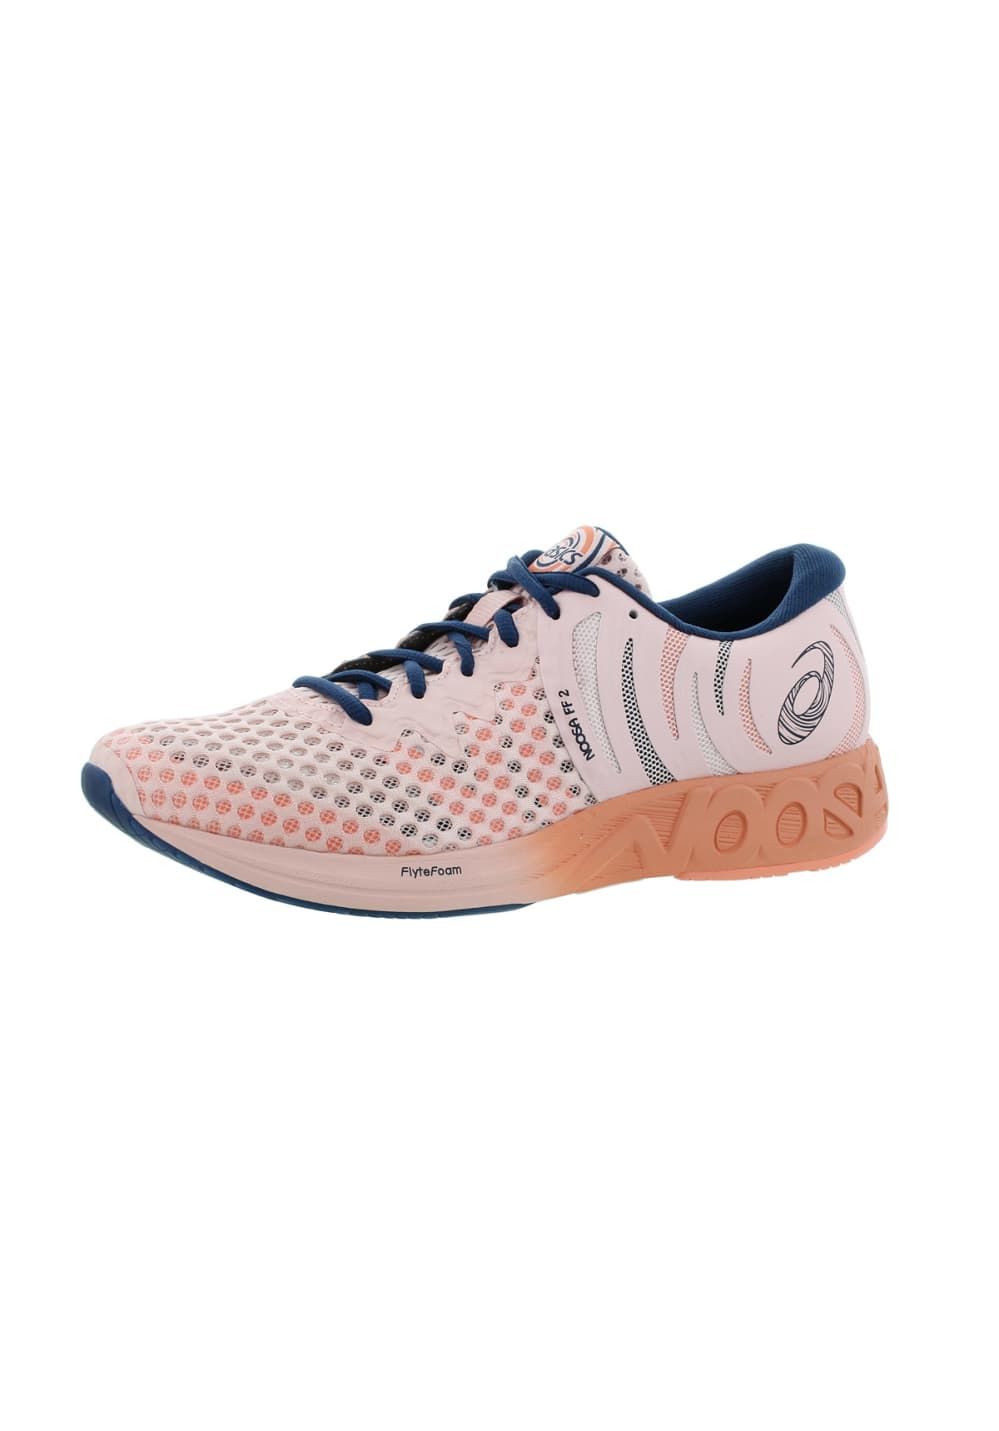 b3b72f33aef ASICS Noosa FF 2 - Running shoes for Women - Pink